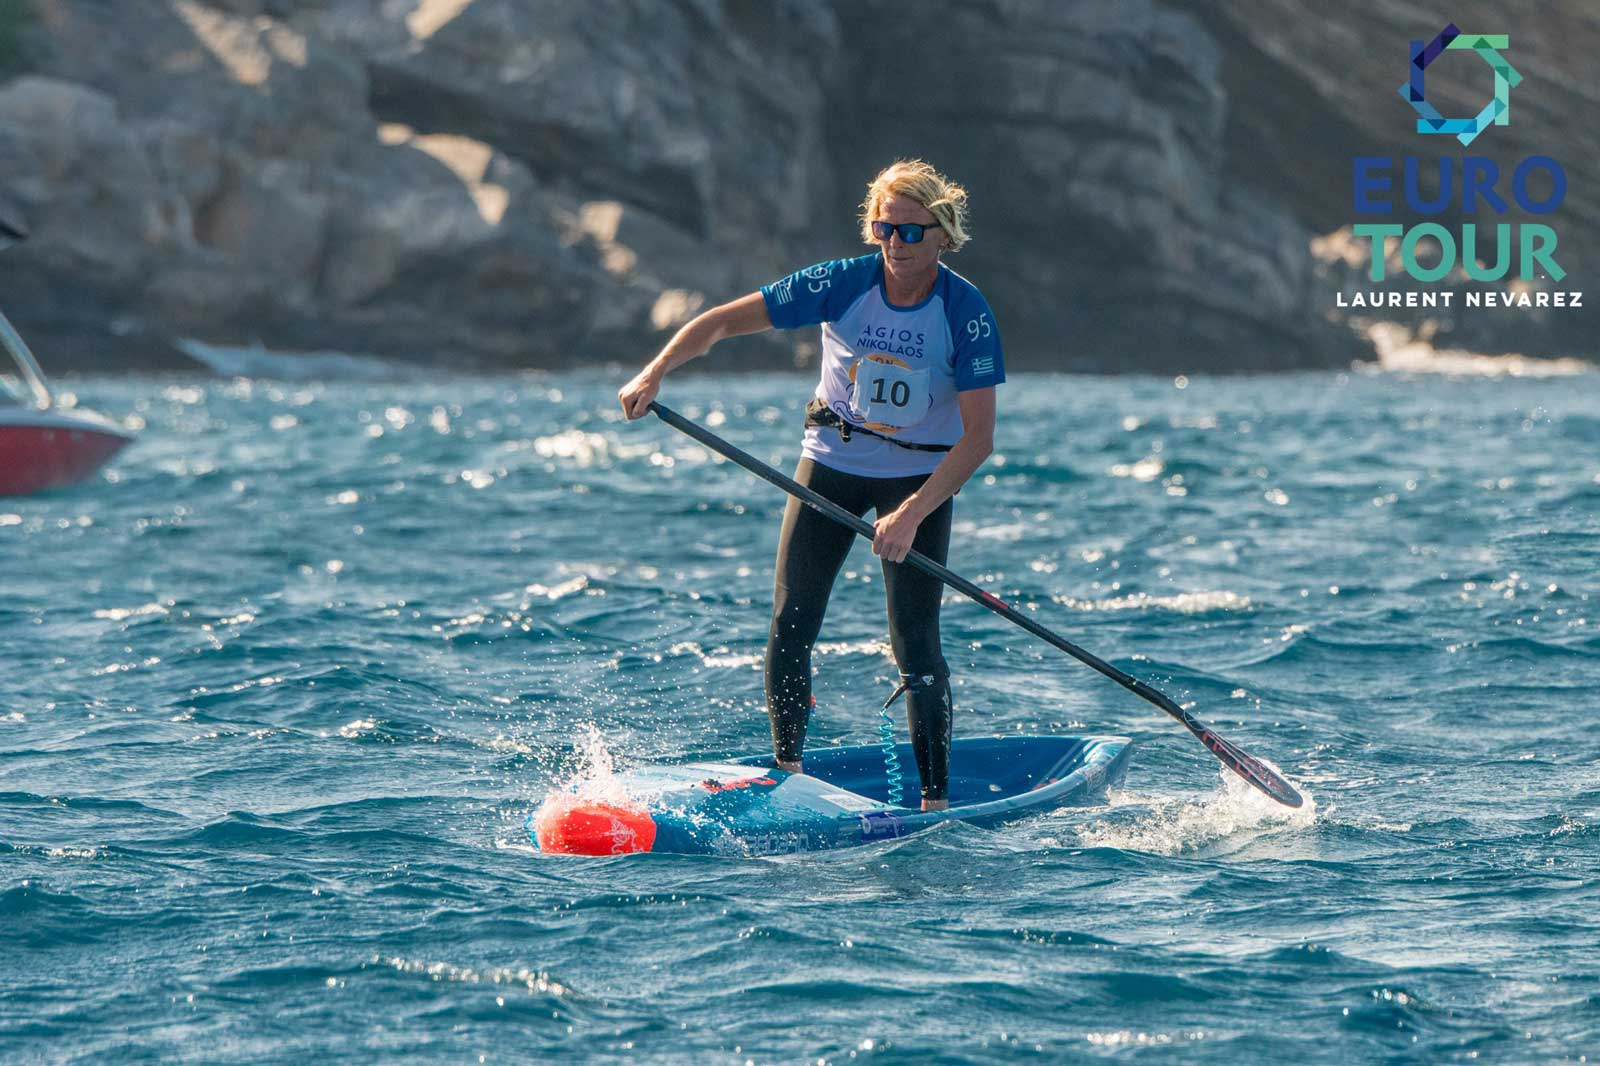 starboard-sup-stand-up-paddelboarding-eurotour-2019-Agios-Nikolaos-on-SUP-Crete-greece-Sonni-Hoenscheid-ace-downwind-1600